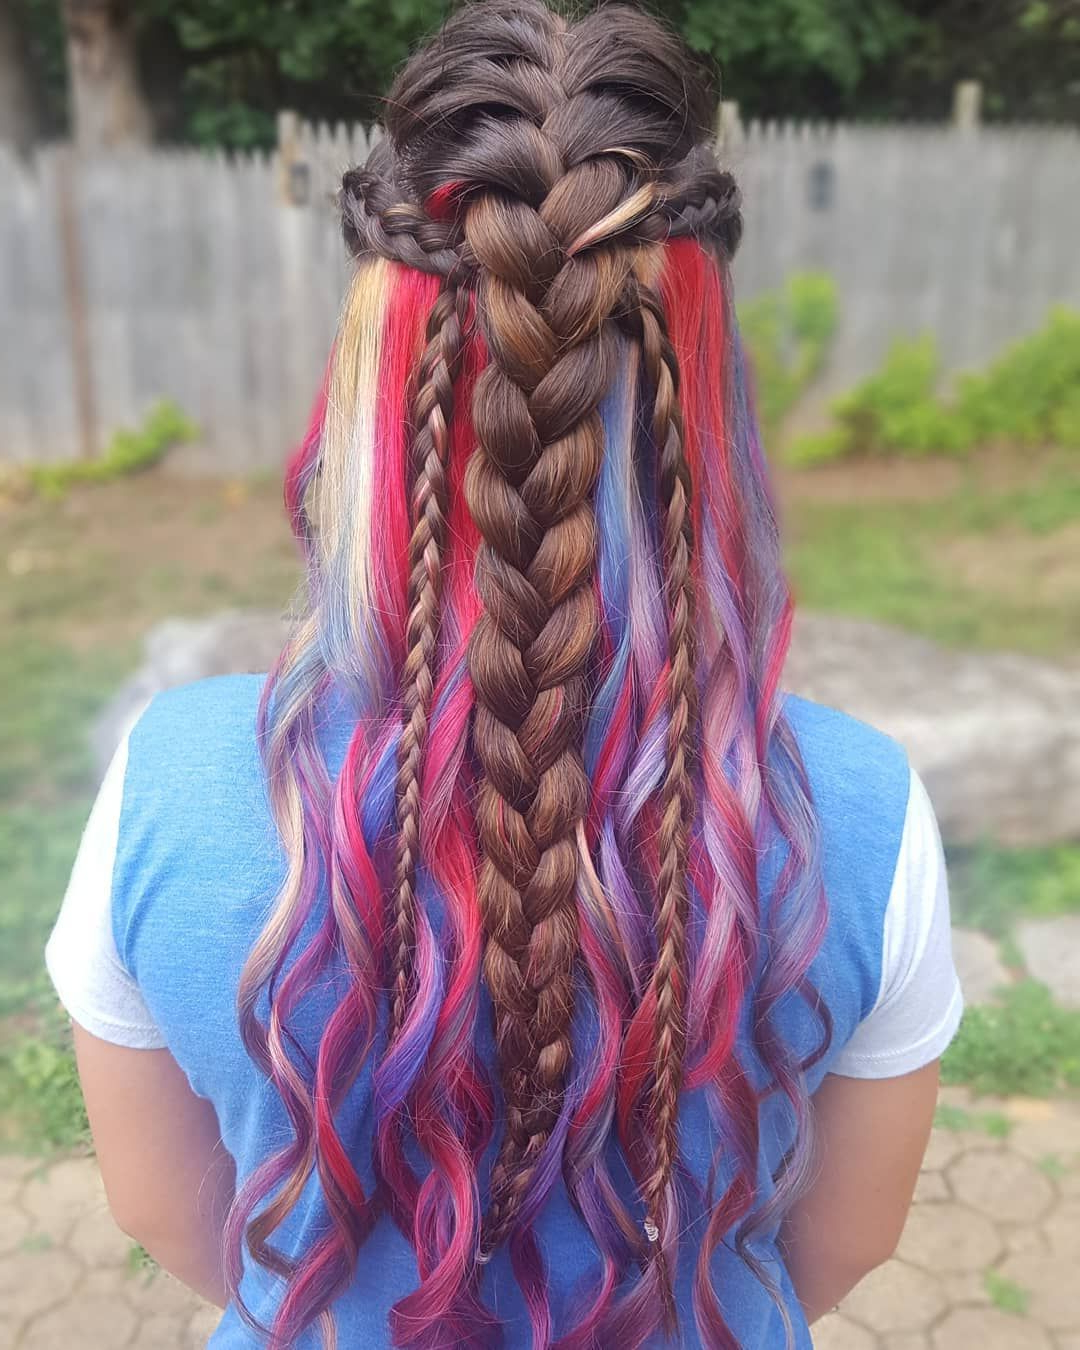 Preferred Peek A Boo Braid Hairstyles Pertaining To Red White And Blue Peekaboo Hair Color With Fun Festival (View 16 of 20)